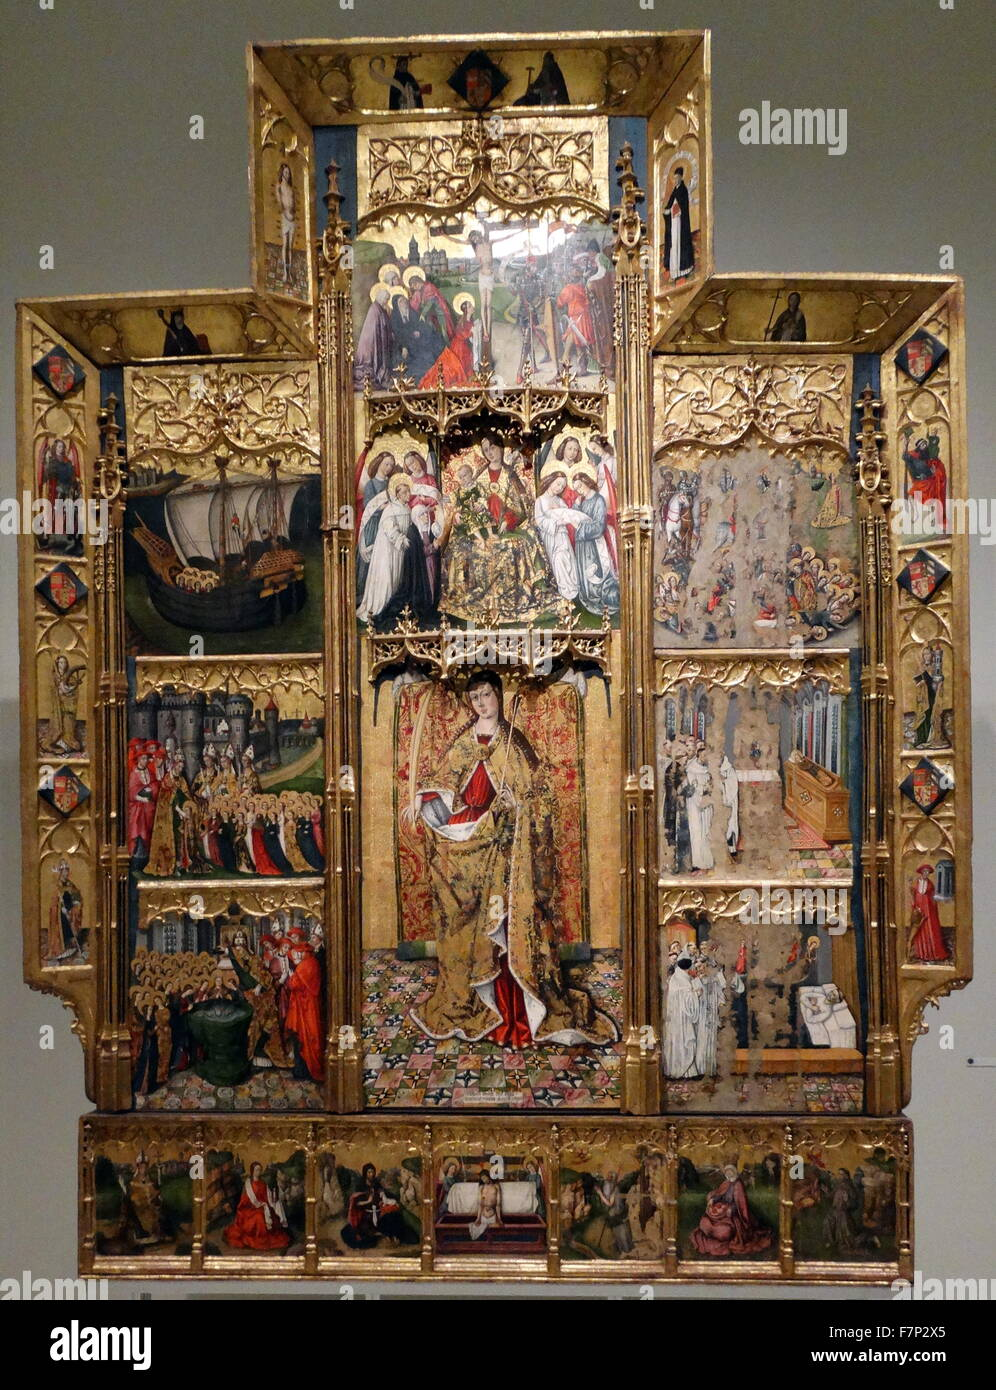 Altarpiece of Saint Ursula and the eleven thousand virgins by Joan Reixach (1411-1486) Spanish painter and miniaturist. - Stock Image